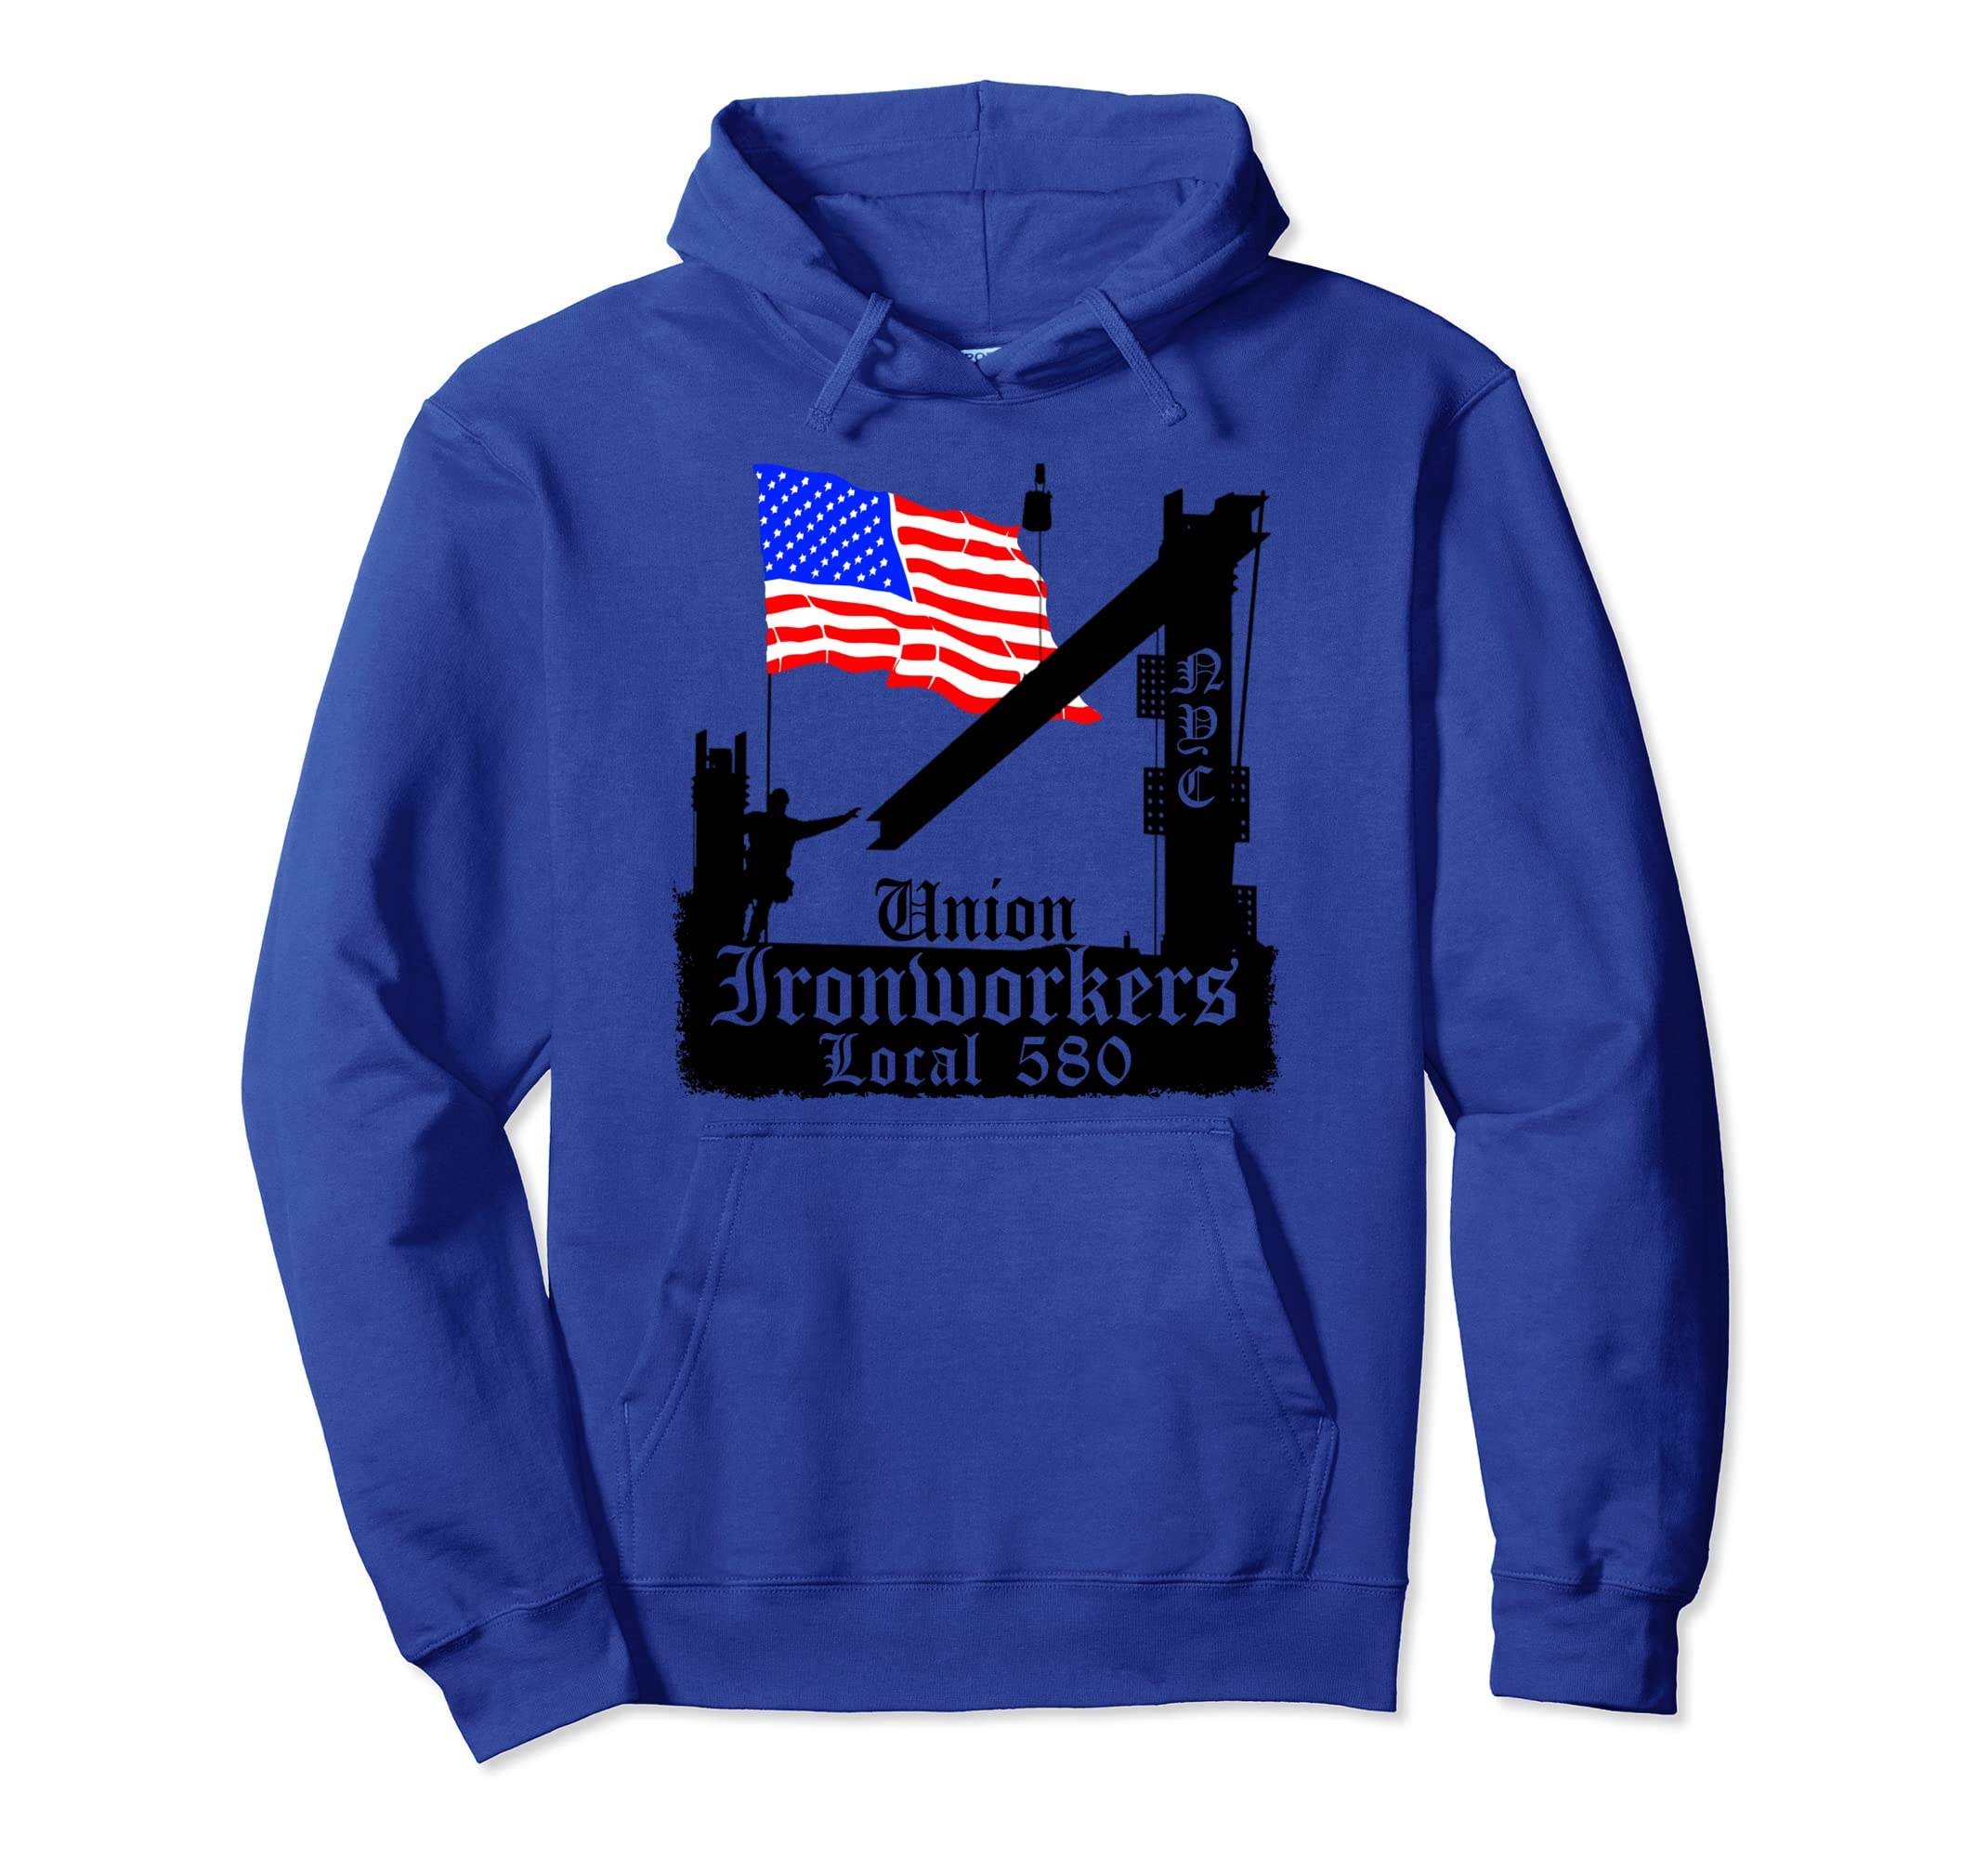 Union Ironworkers Hoodie Local 580 NYC American Flag